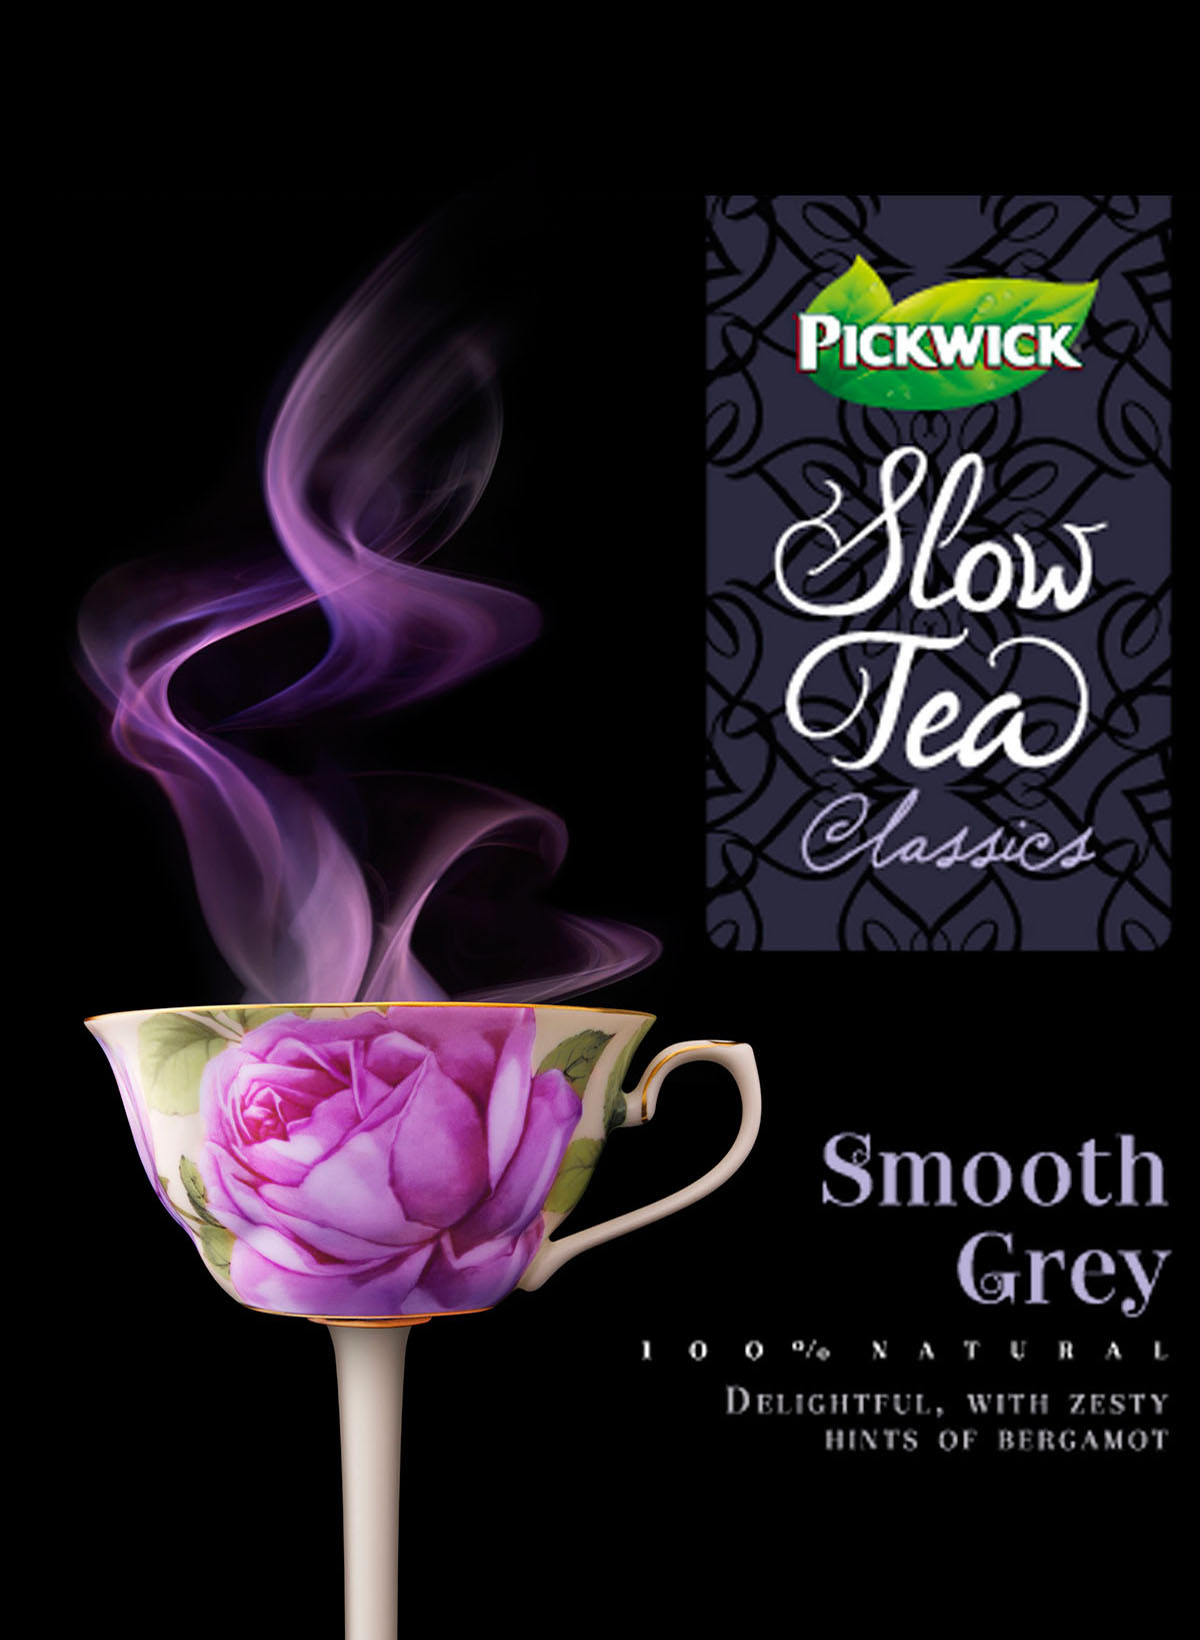 Packaging fotografie van Pickwick Slow Tea's Smooth Grey gemaakt door Studio_m Fotografie Amsterdam